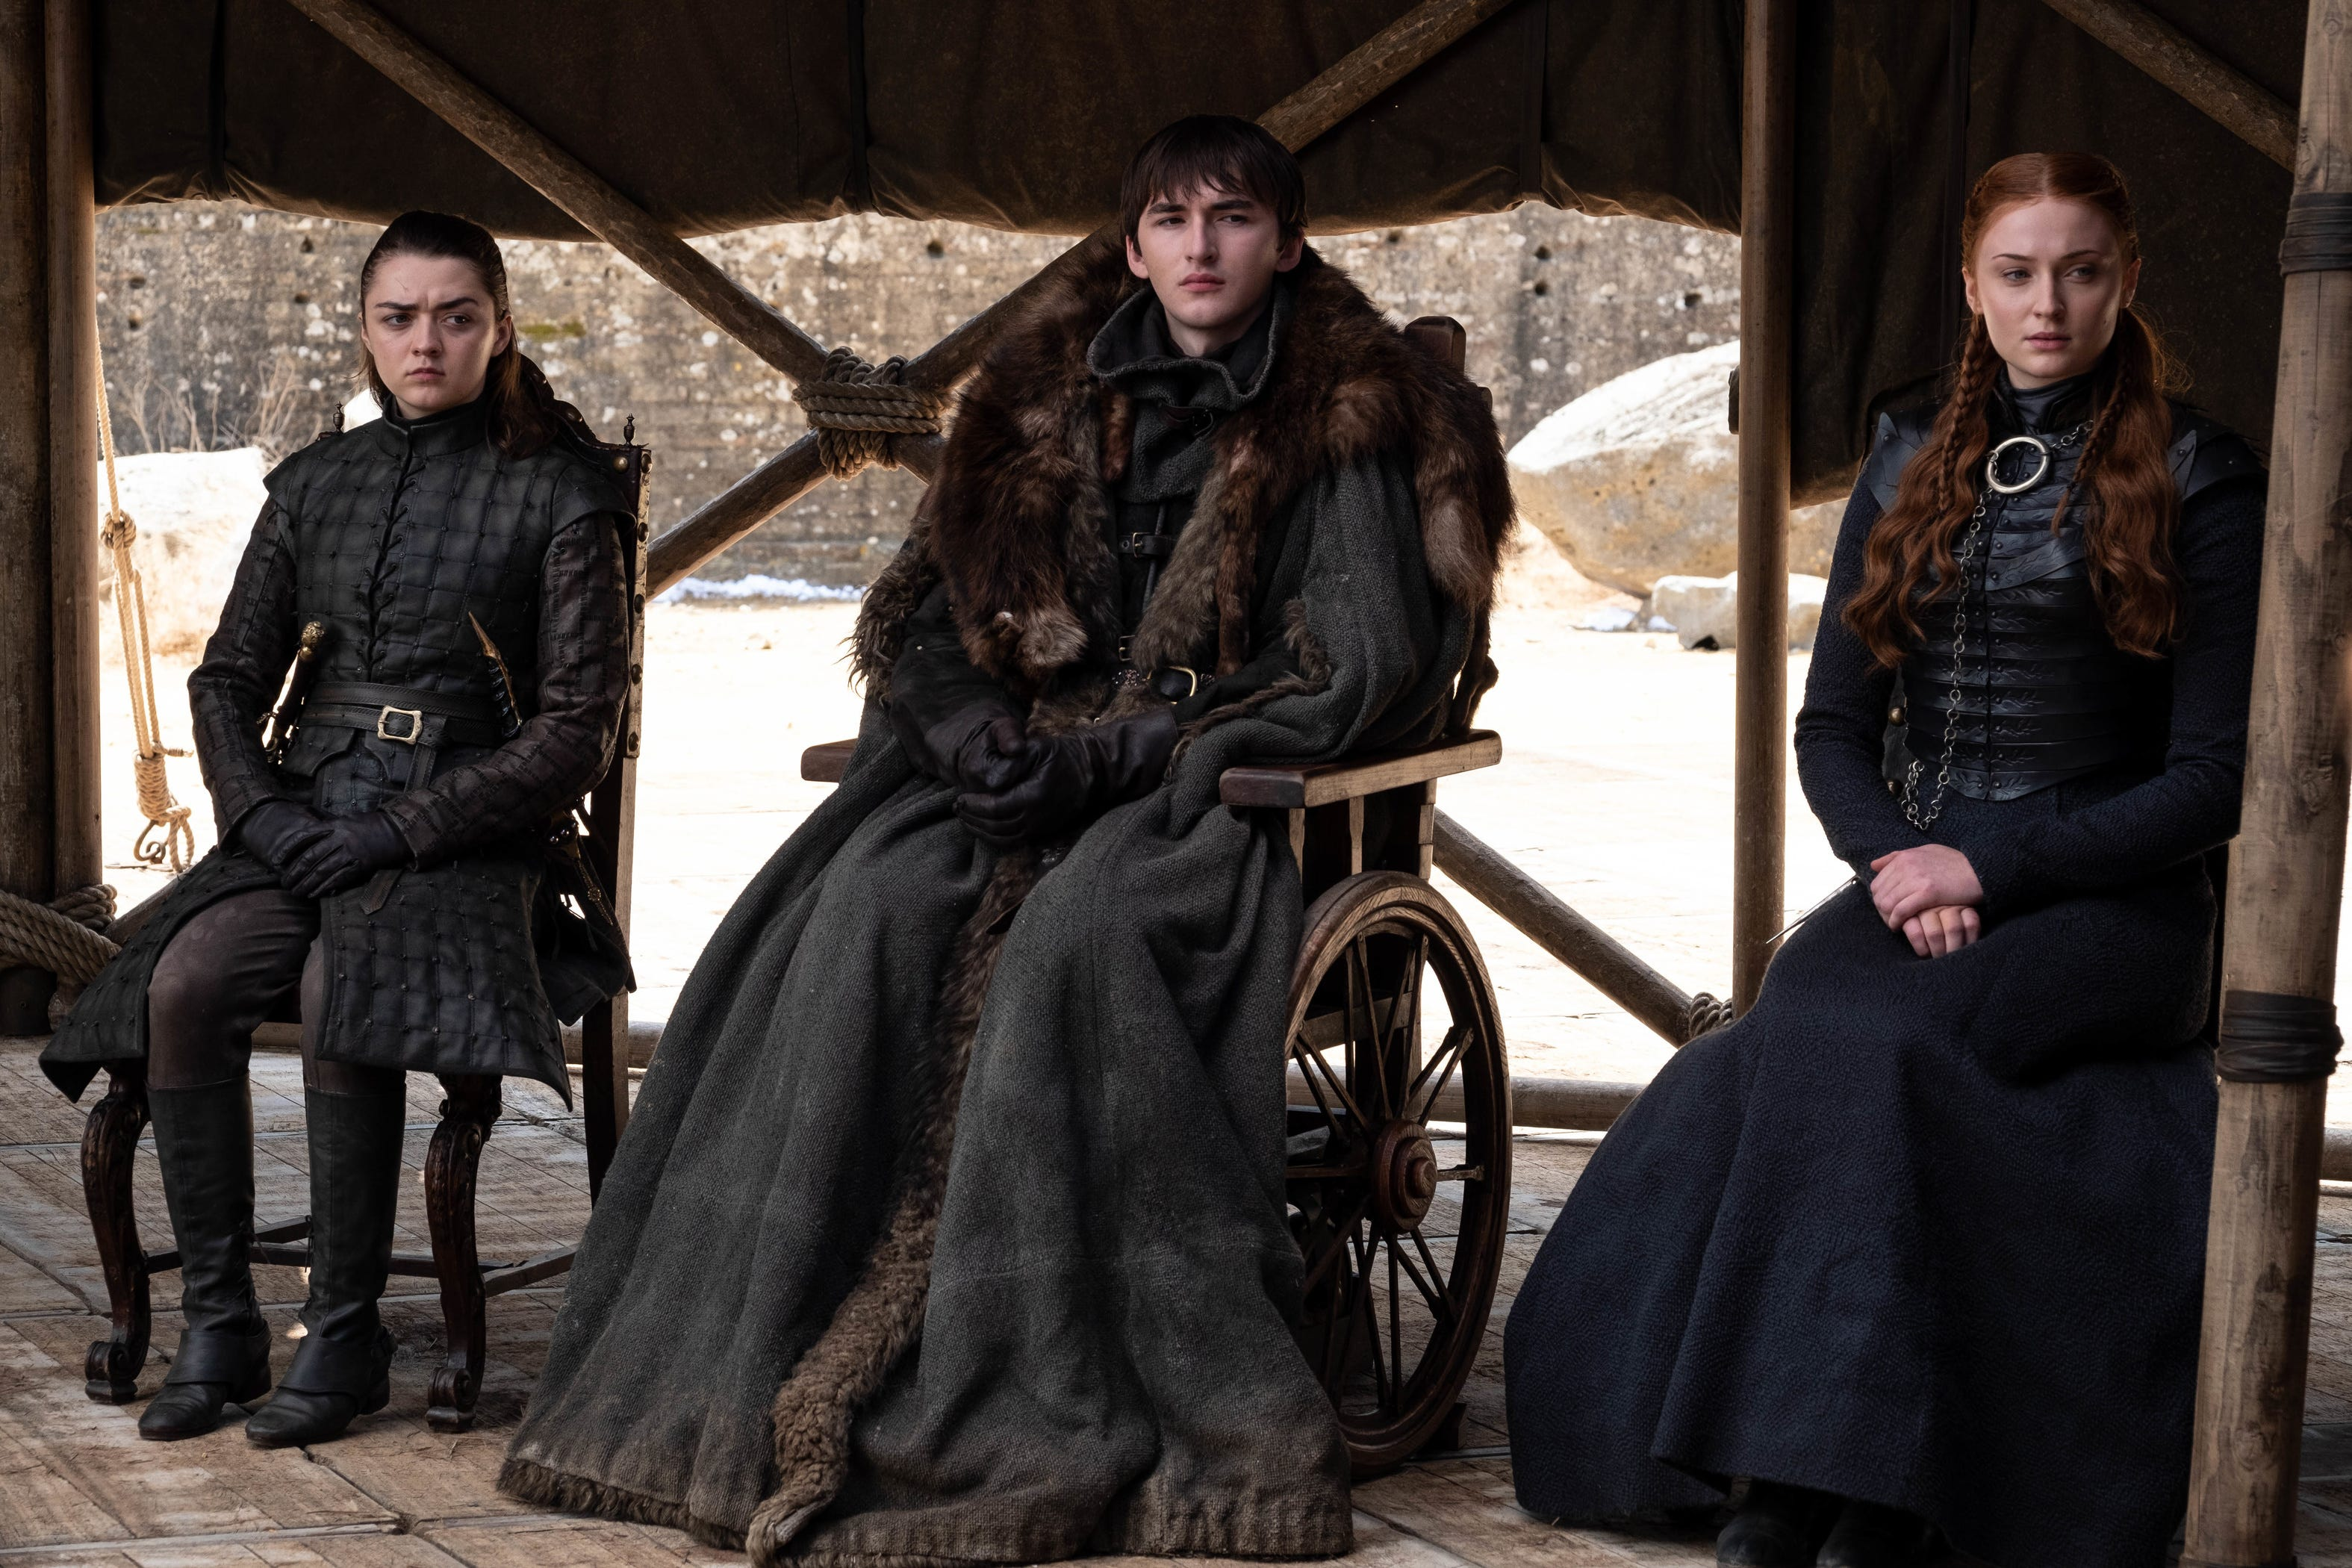 Who Won Game Of Thrones? Well, It's Complicated...